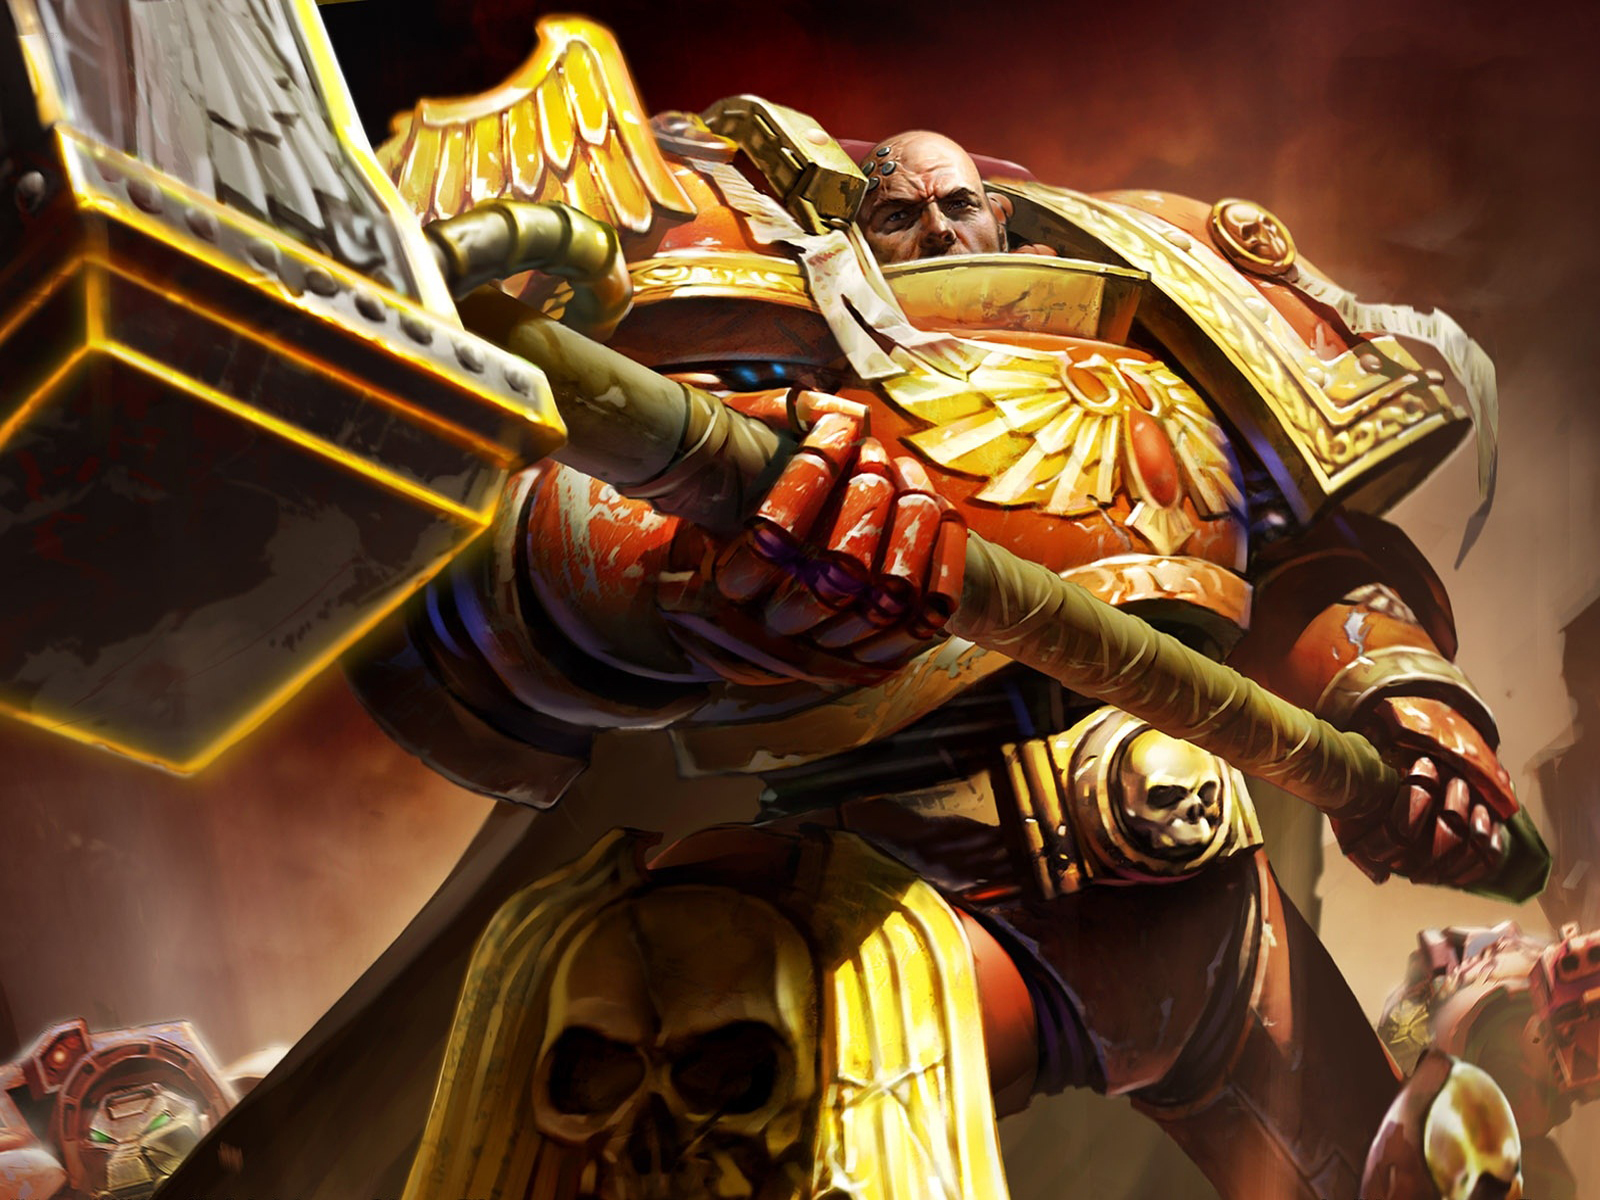 Wallpaper Warhammer 40 Download Wallpaper DaWallpaperz 1600x1200